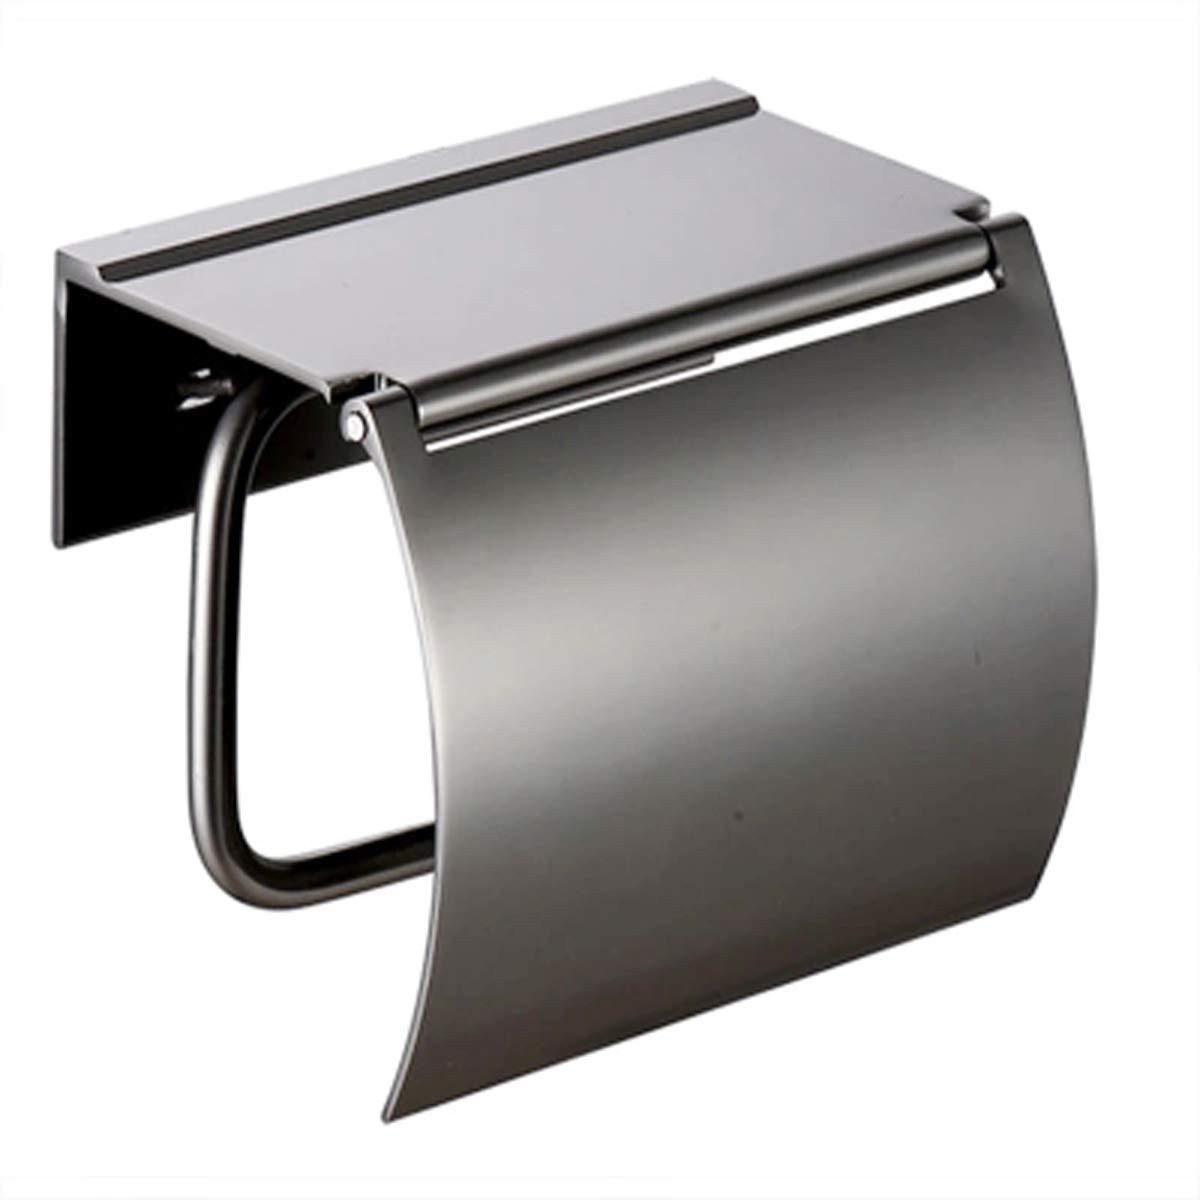 Q&F Wall Mount Toilet Paper Holder With Cover,Bathroom Tissue Holder With Mobile Phone Storage Shelf-waterproof,Moisture Proof,Aluminium-Silver gray